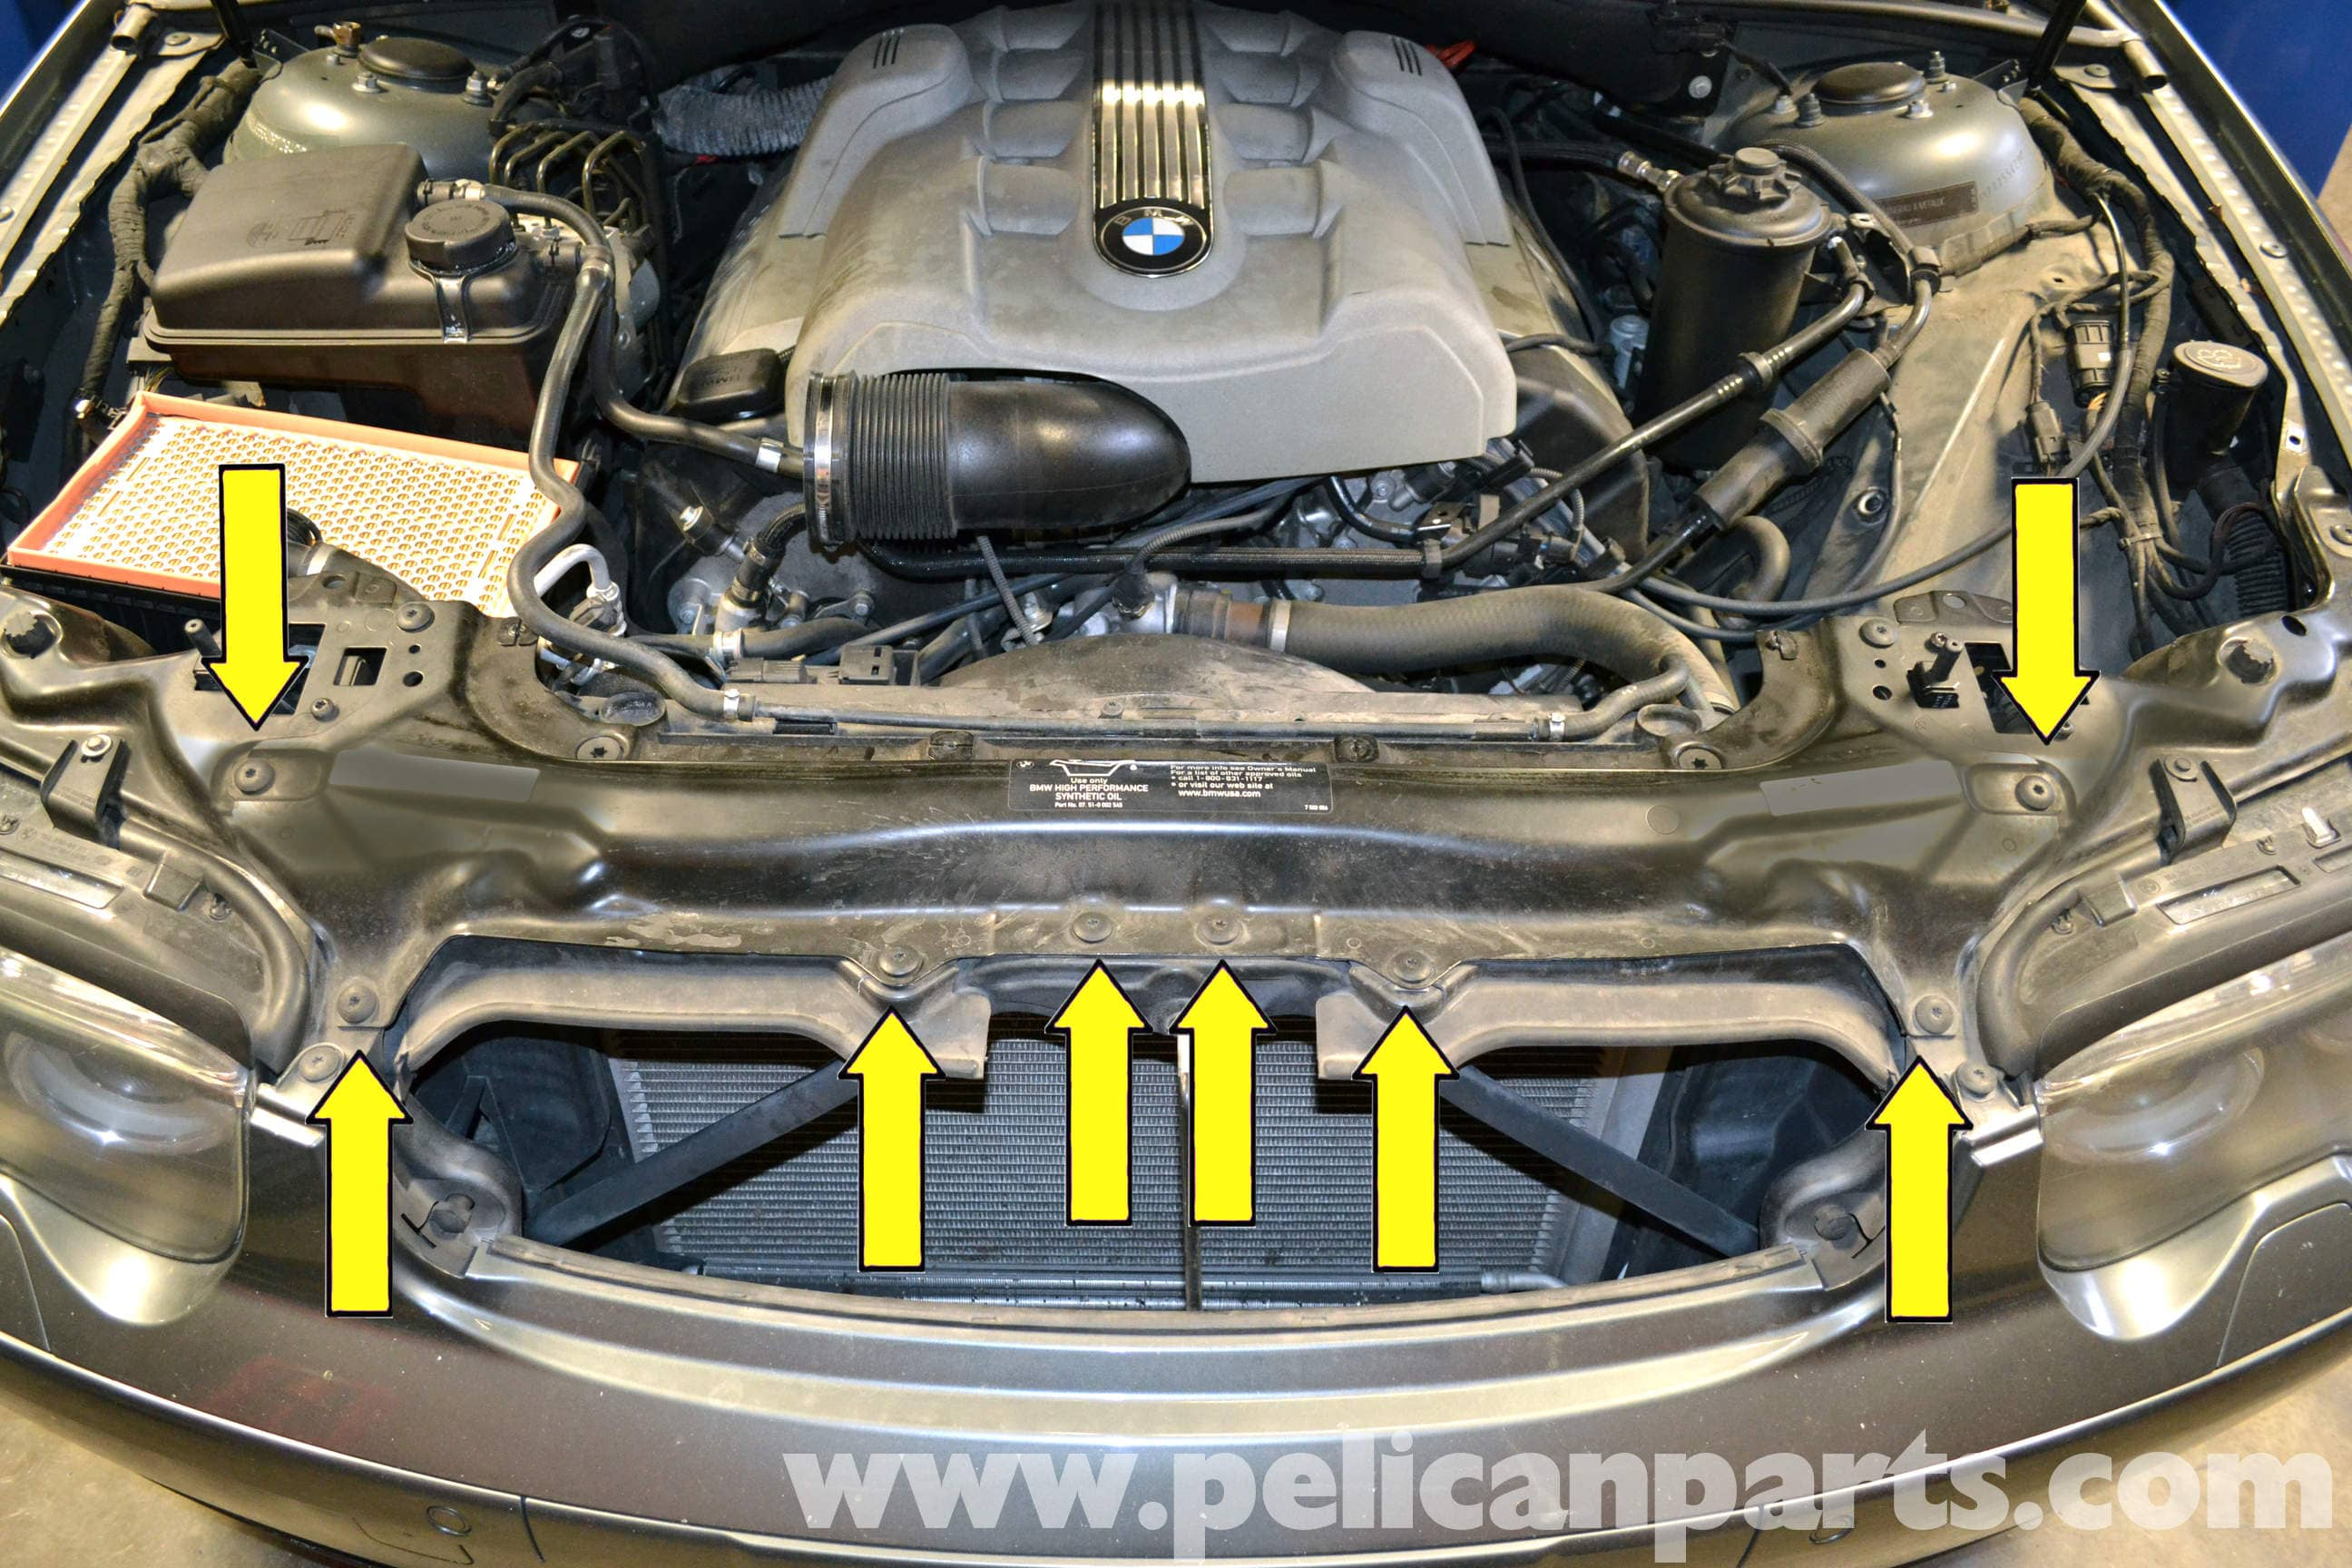 bmw the infamous alternator bracket oil leak on the e65 bmw 7 rh  pelicanparts com Human Anatomy Diagram Electric Engine Diagram